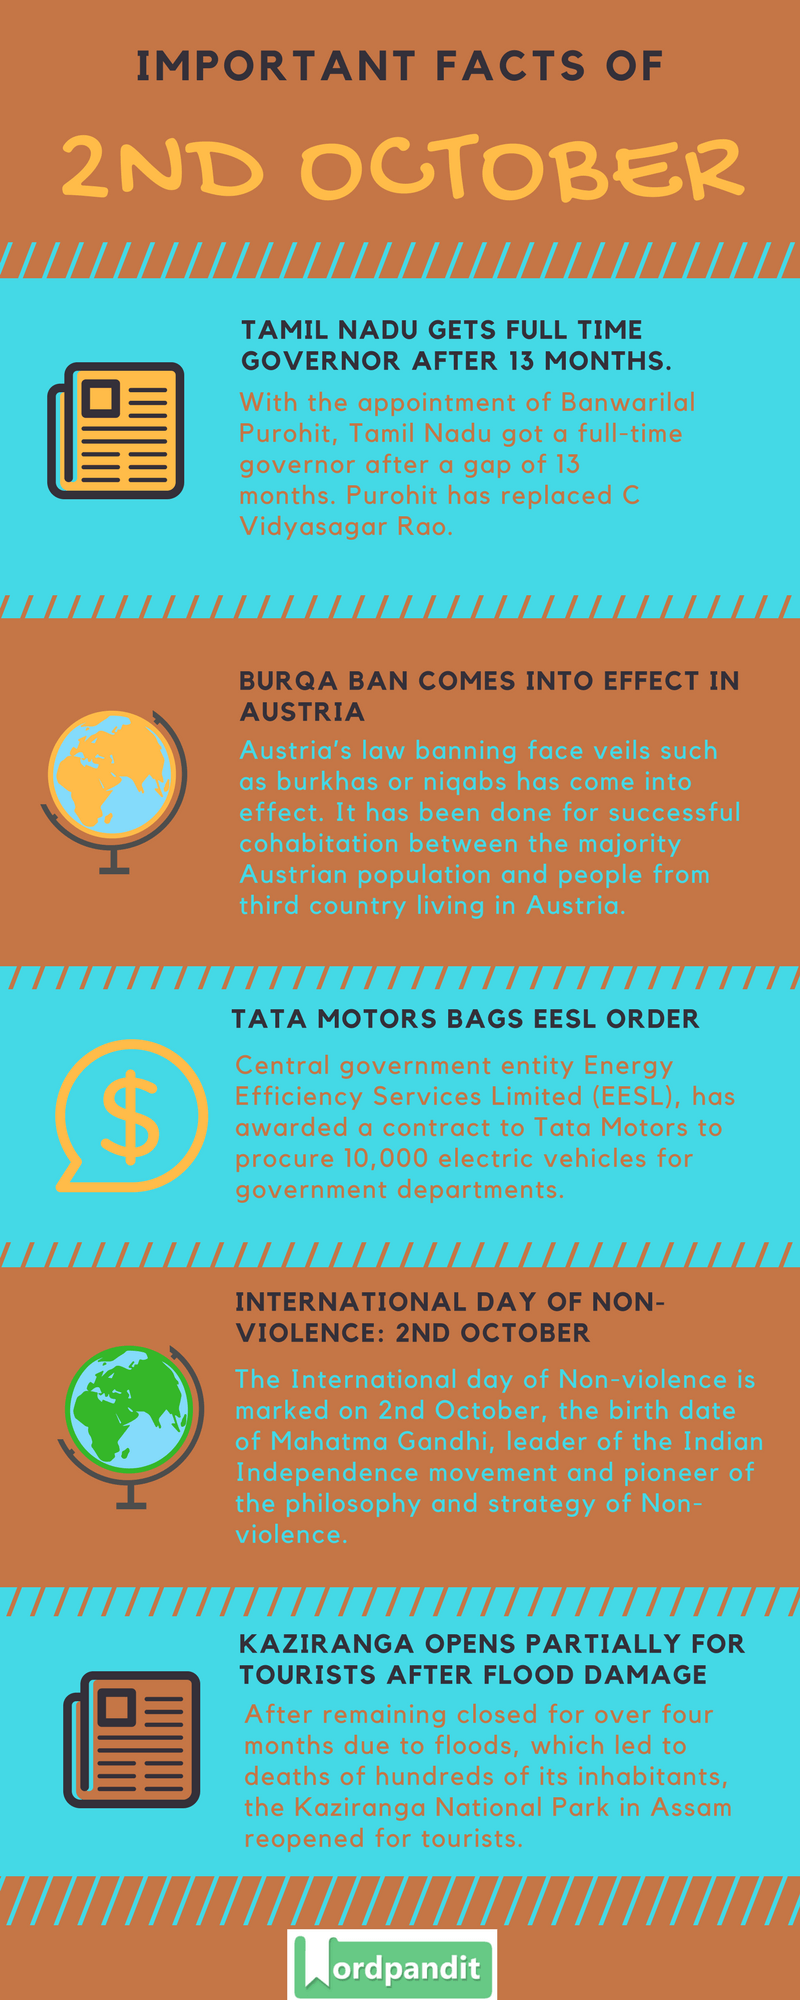 Daily-Current-Affairs-2-october-2017-Current-Affairs-Quiz-october-2-2017-Current-Affairs-Infographic